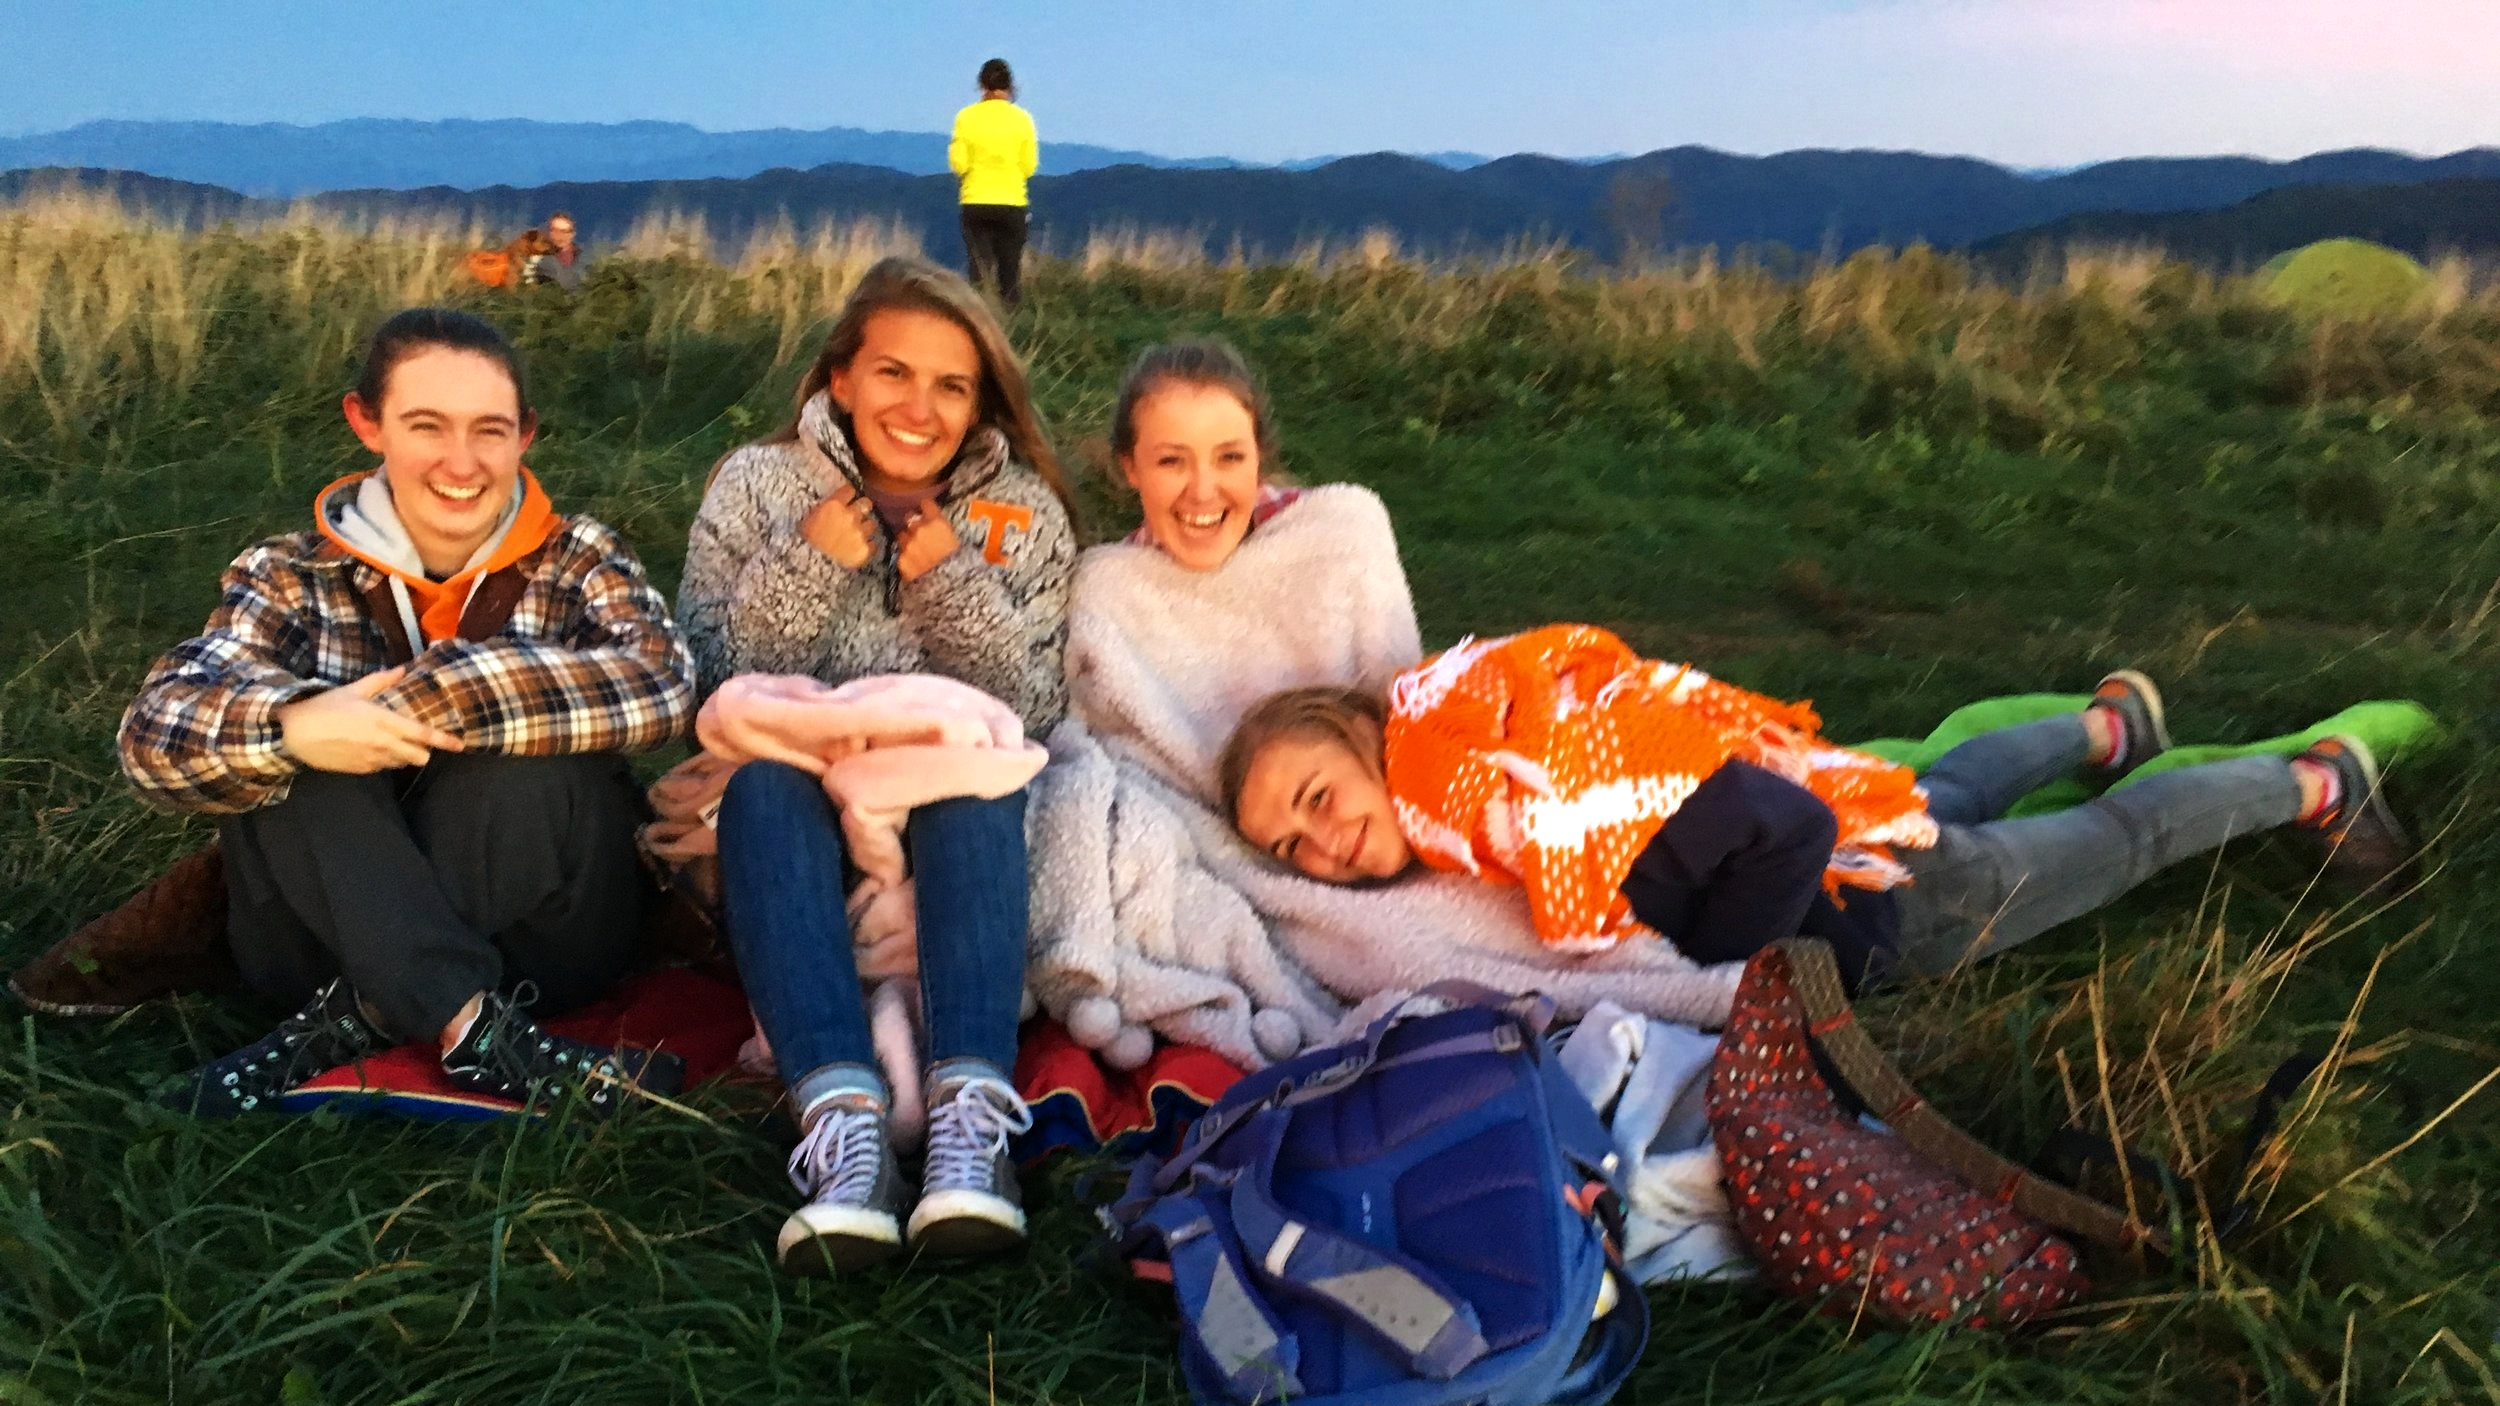 MAX PATCH TRIP - Carpool sing-a-longs, a treck up a hill, ultimate frisbee, a gorgeous sunset, and beautiful stargazing. You don't want to miss this!